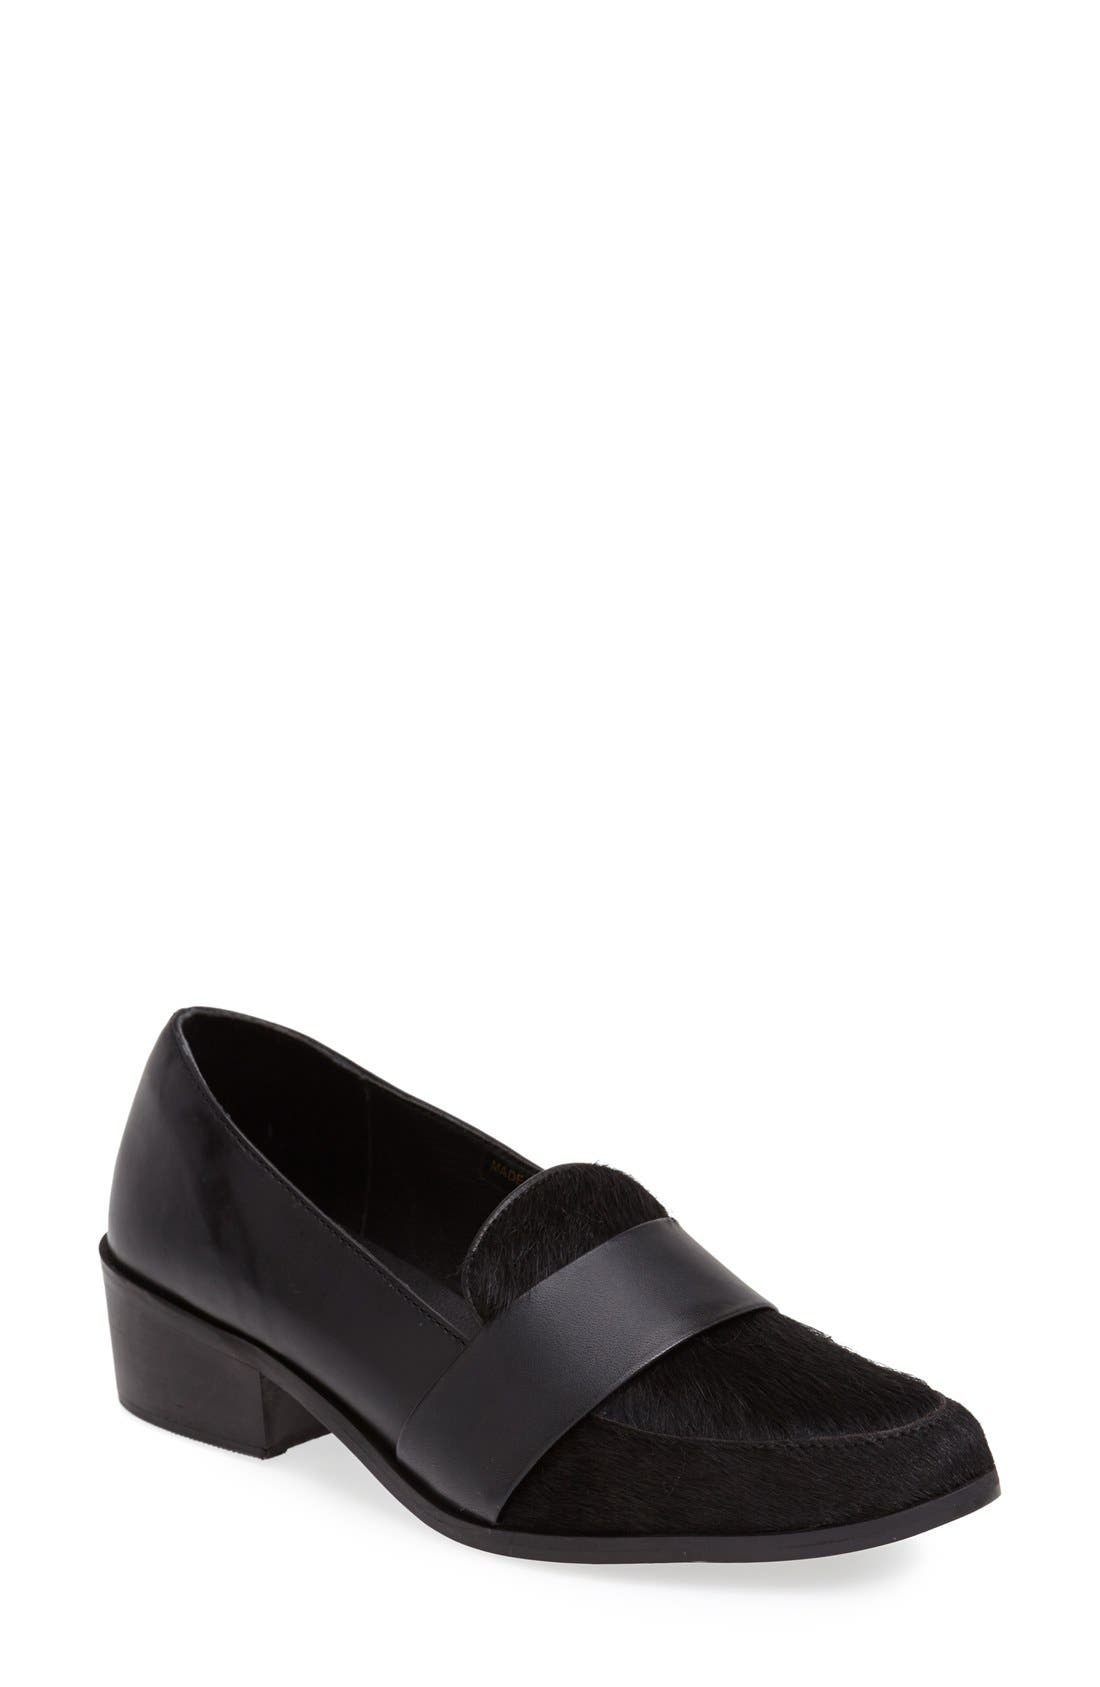 'Baha' Calf Hair and Leather Loafer,                             Main thumbnail 1, color,                             001